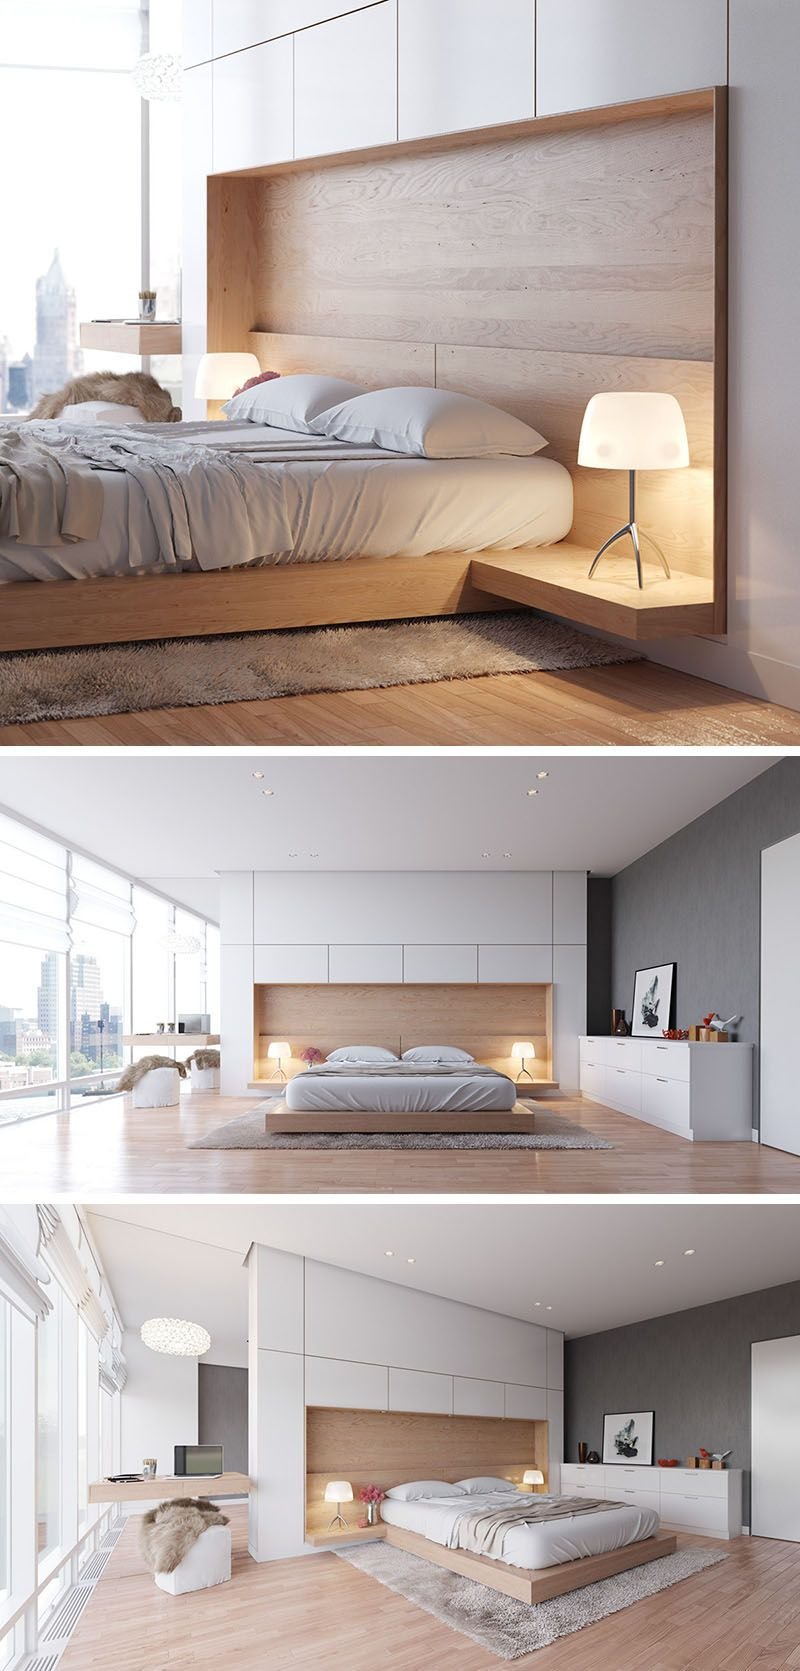 Bedroom Design Idea - Combine Your Bed And Side Table Into One ...